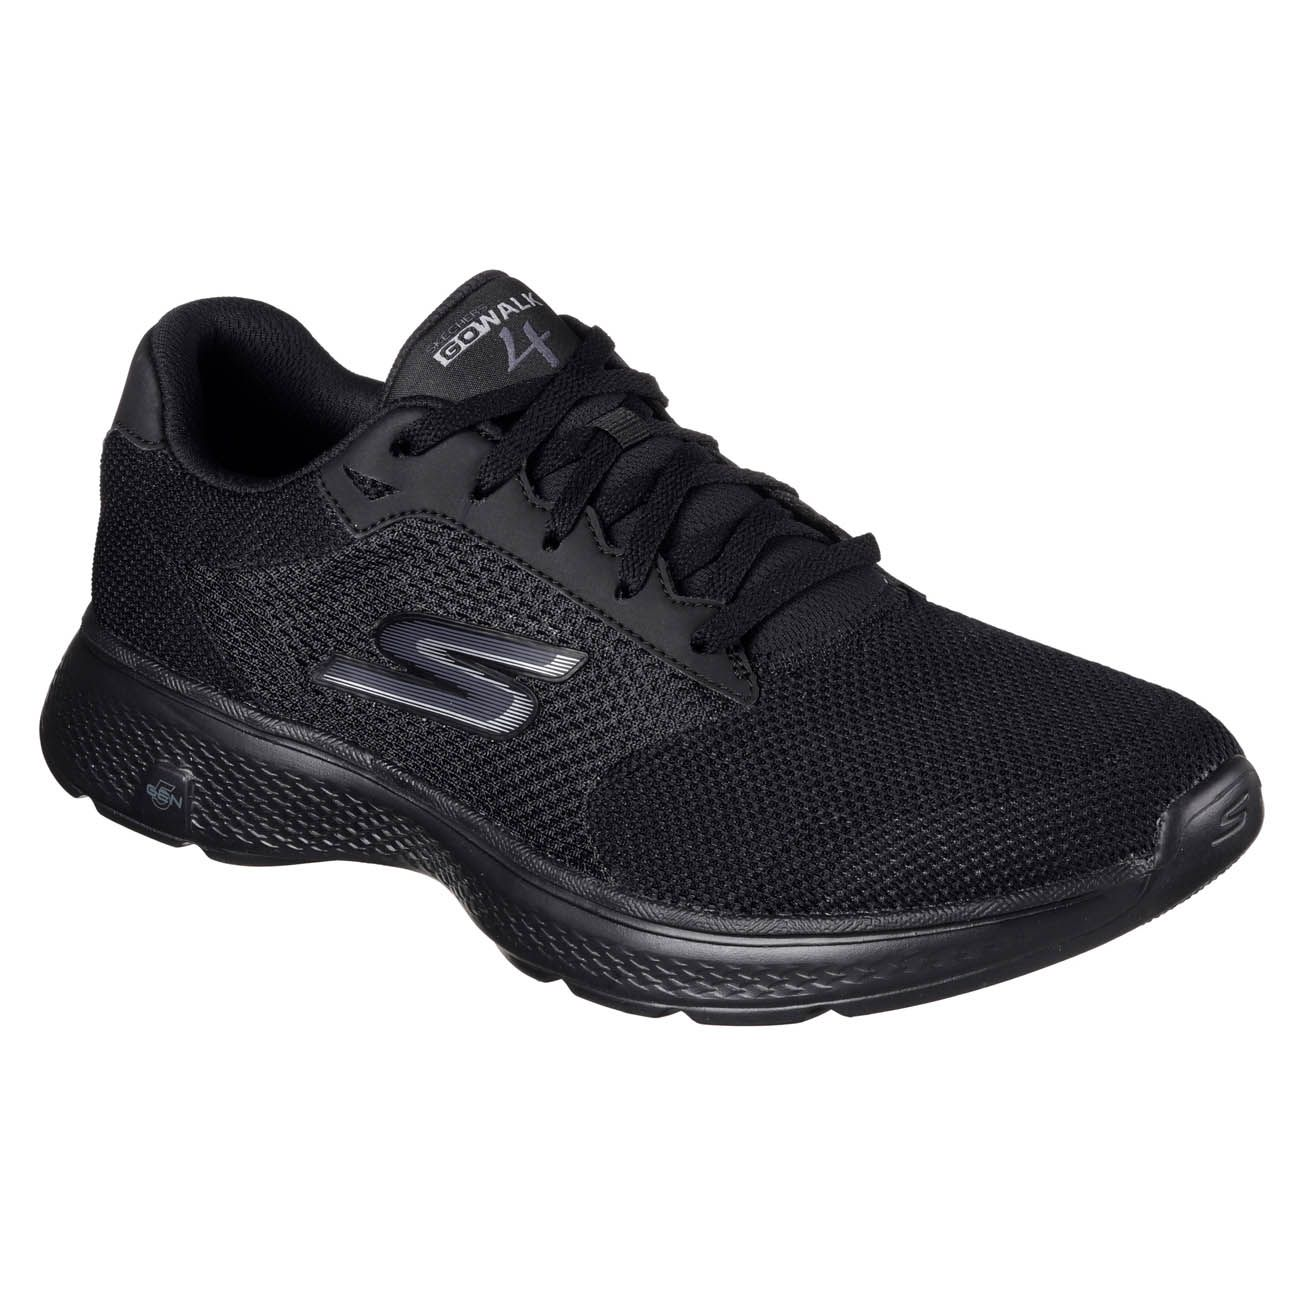 skechers go walk 4 lace up mens walking shoes. Black Bedroom Furniture Sets. Home Design Ideas